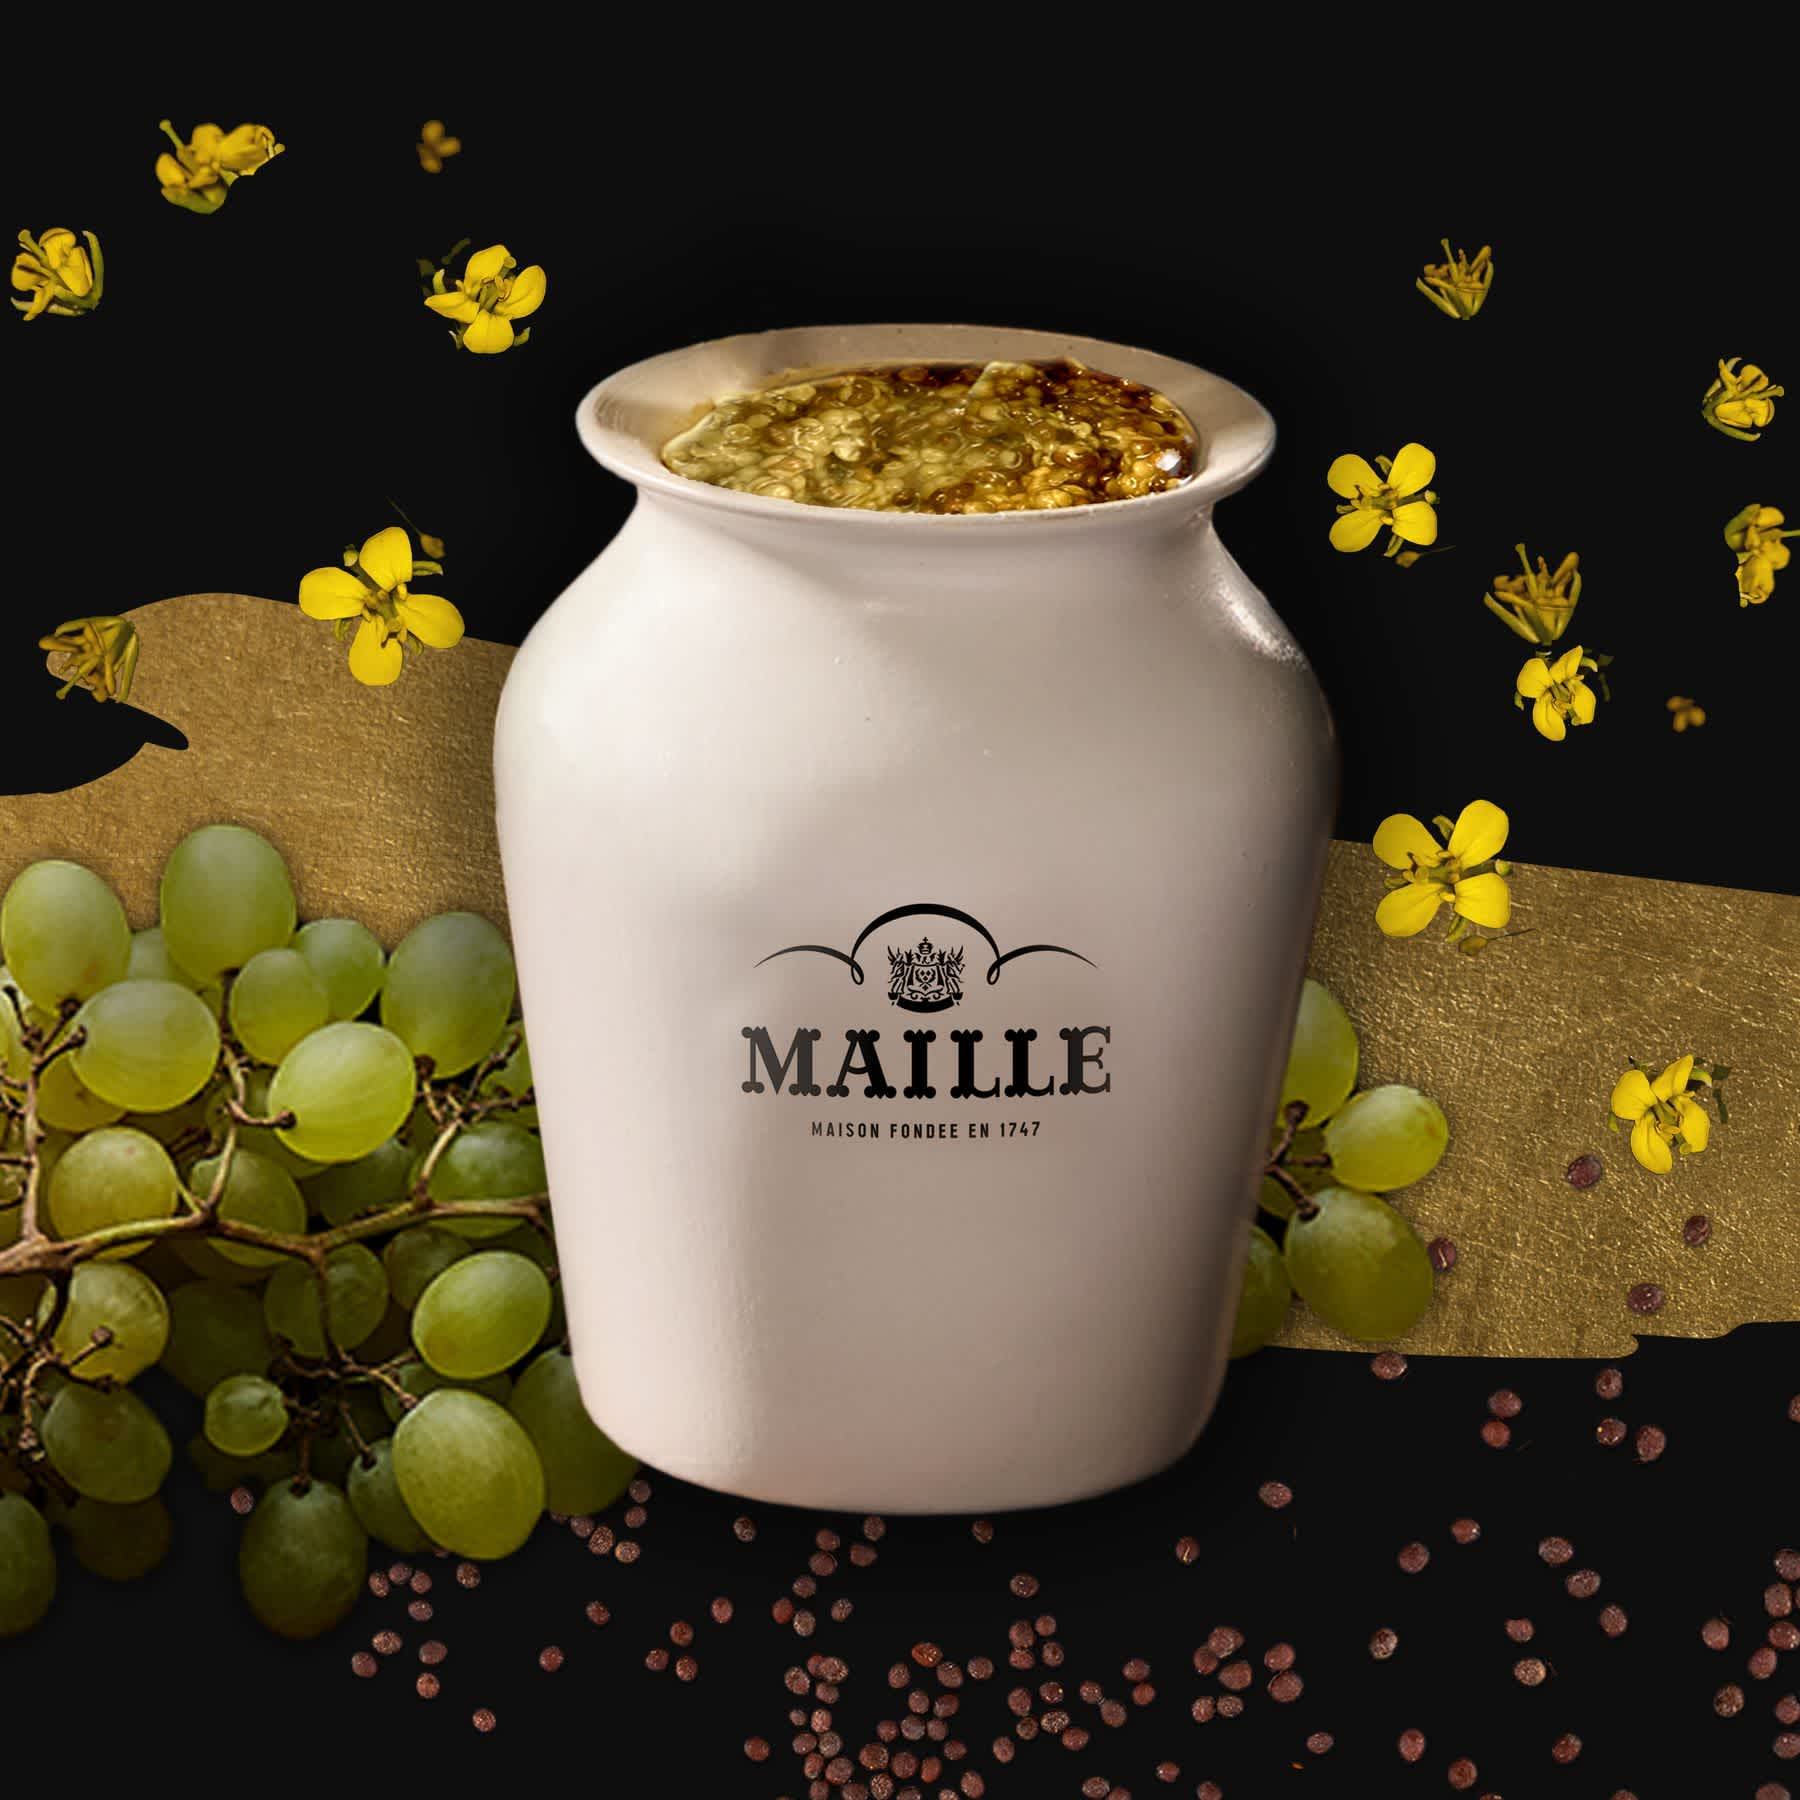 Maille - Moutarde a l'Ancienne au chardonnay de bourgogne servie a la pompe, new visual